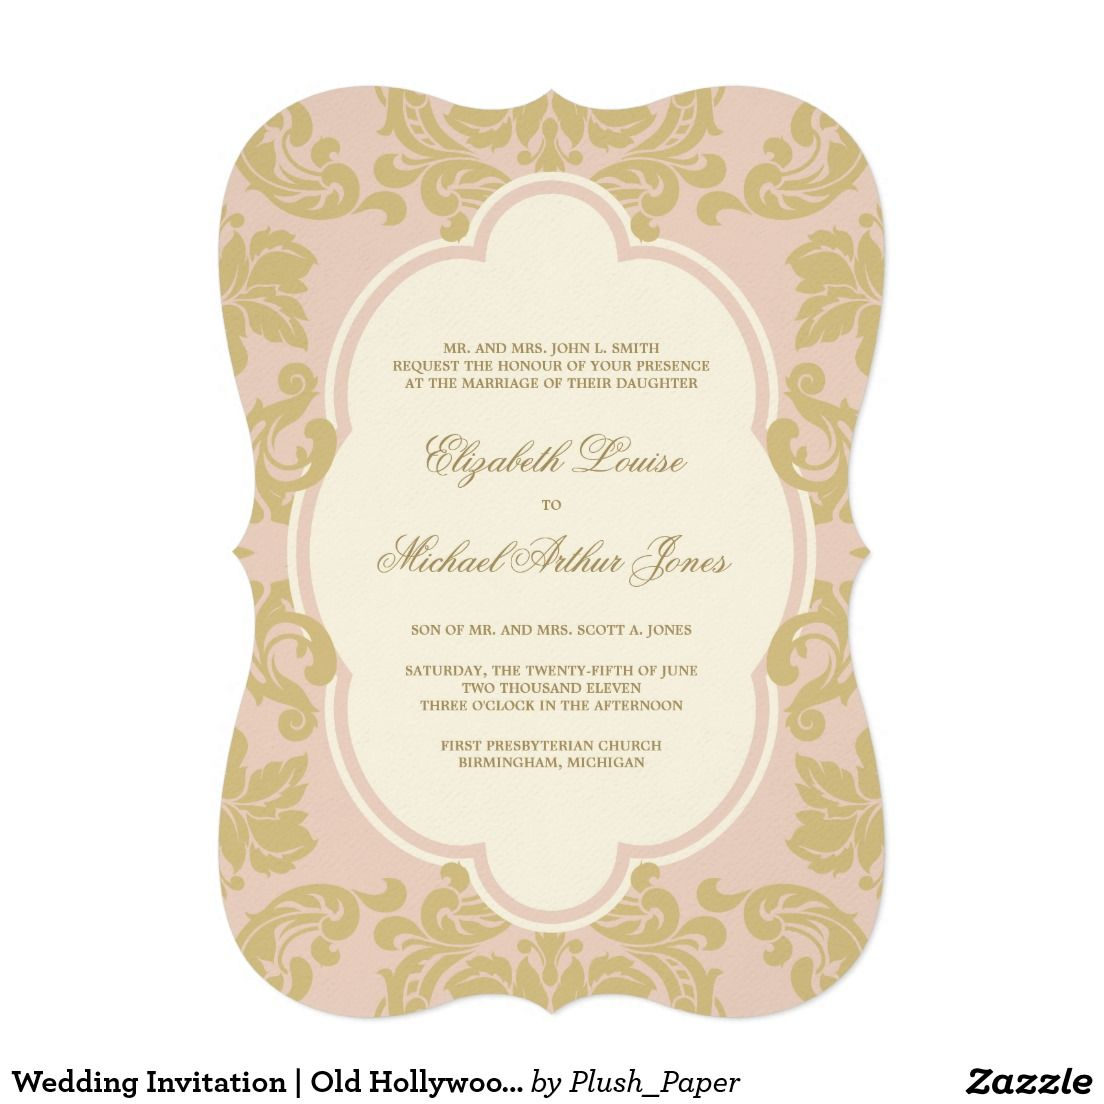 d4a58a690d79 Wedding invitation old hollywood glamour the elegant wedding jpg 1104x1104  Old hollywood wedding shower invitations